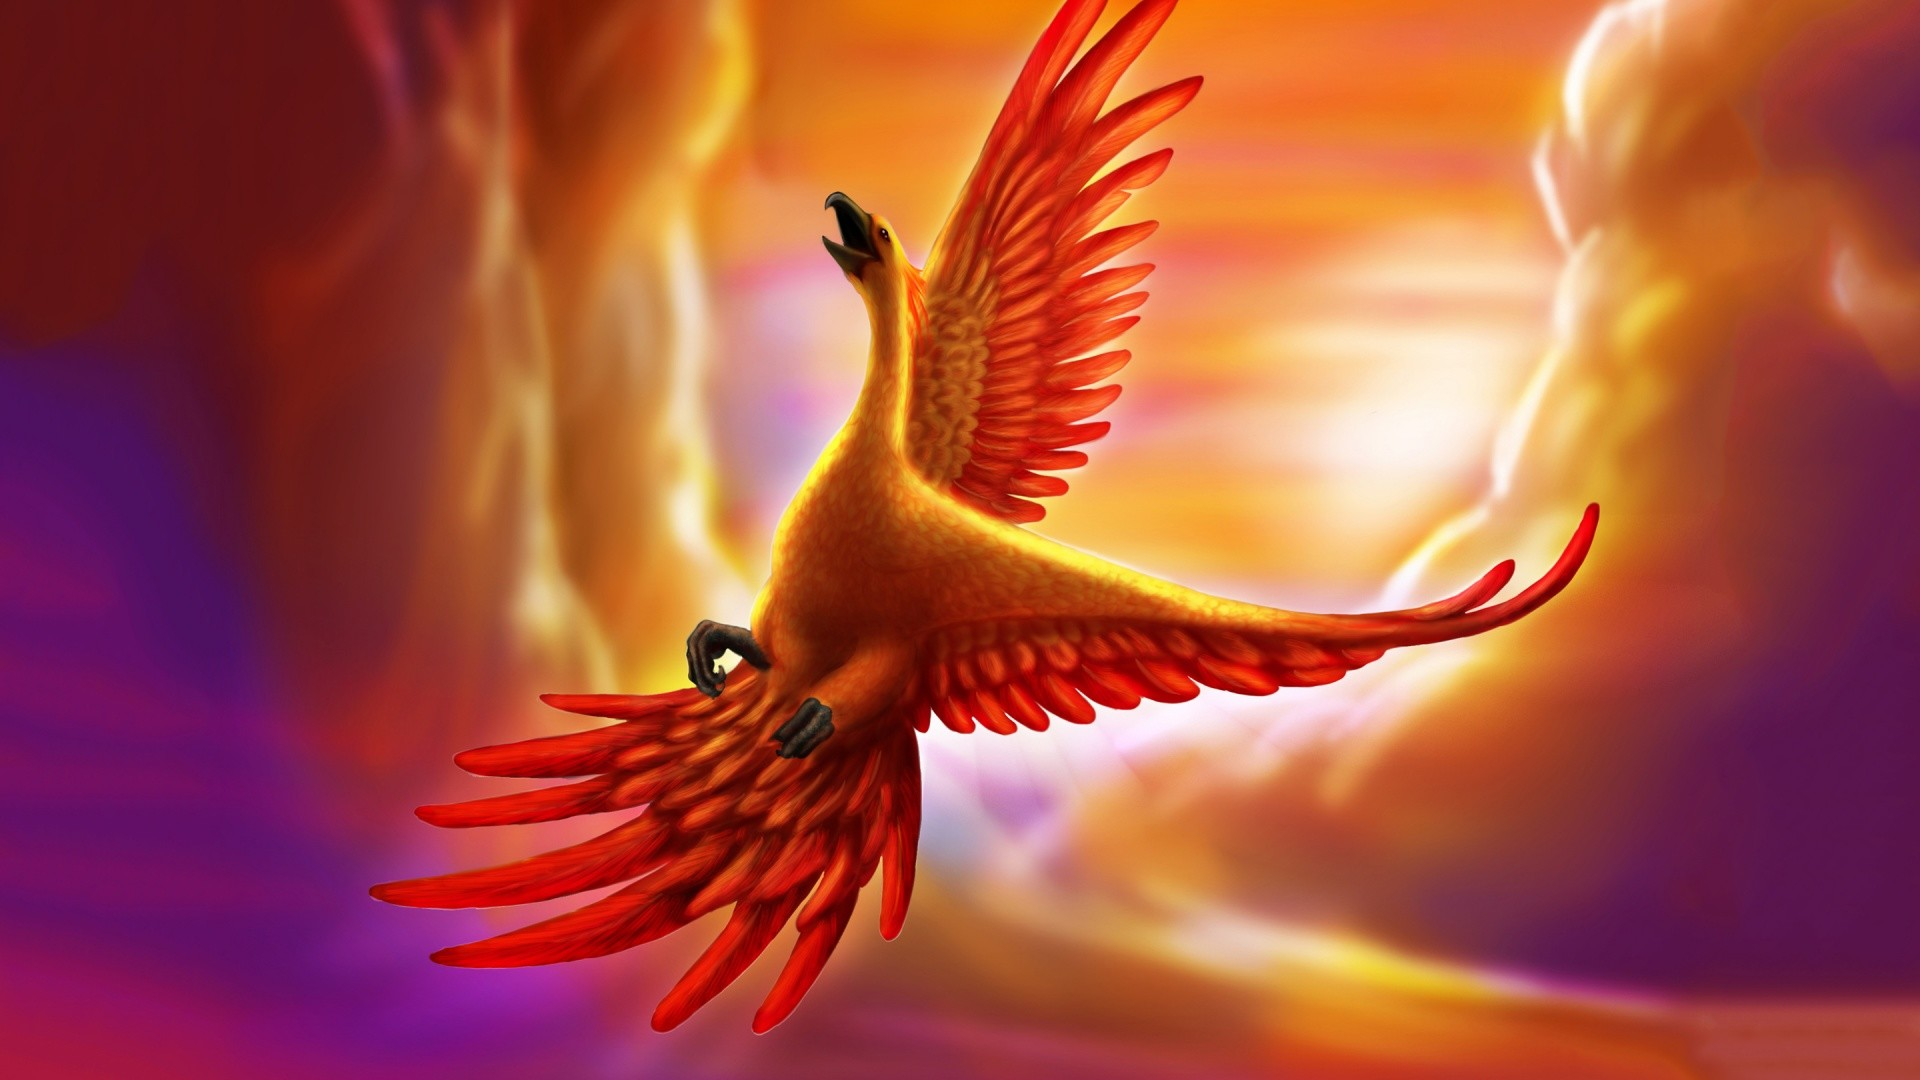 Phoenix Bird Wallpapers ·① WallpaperTag